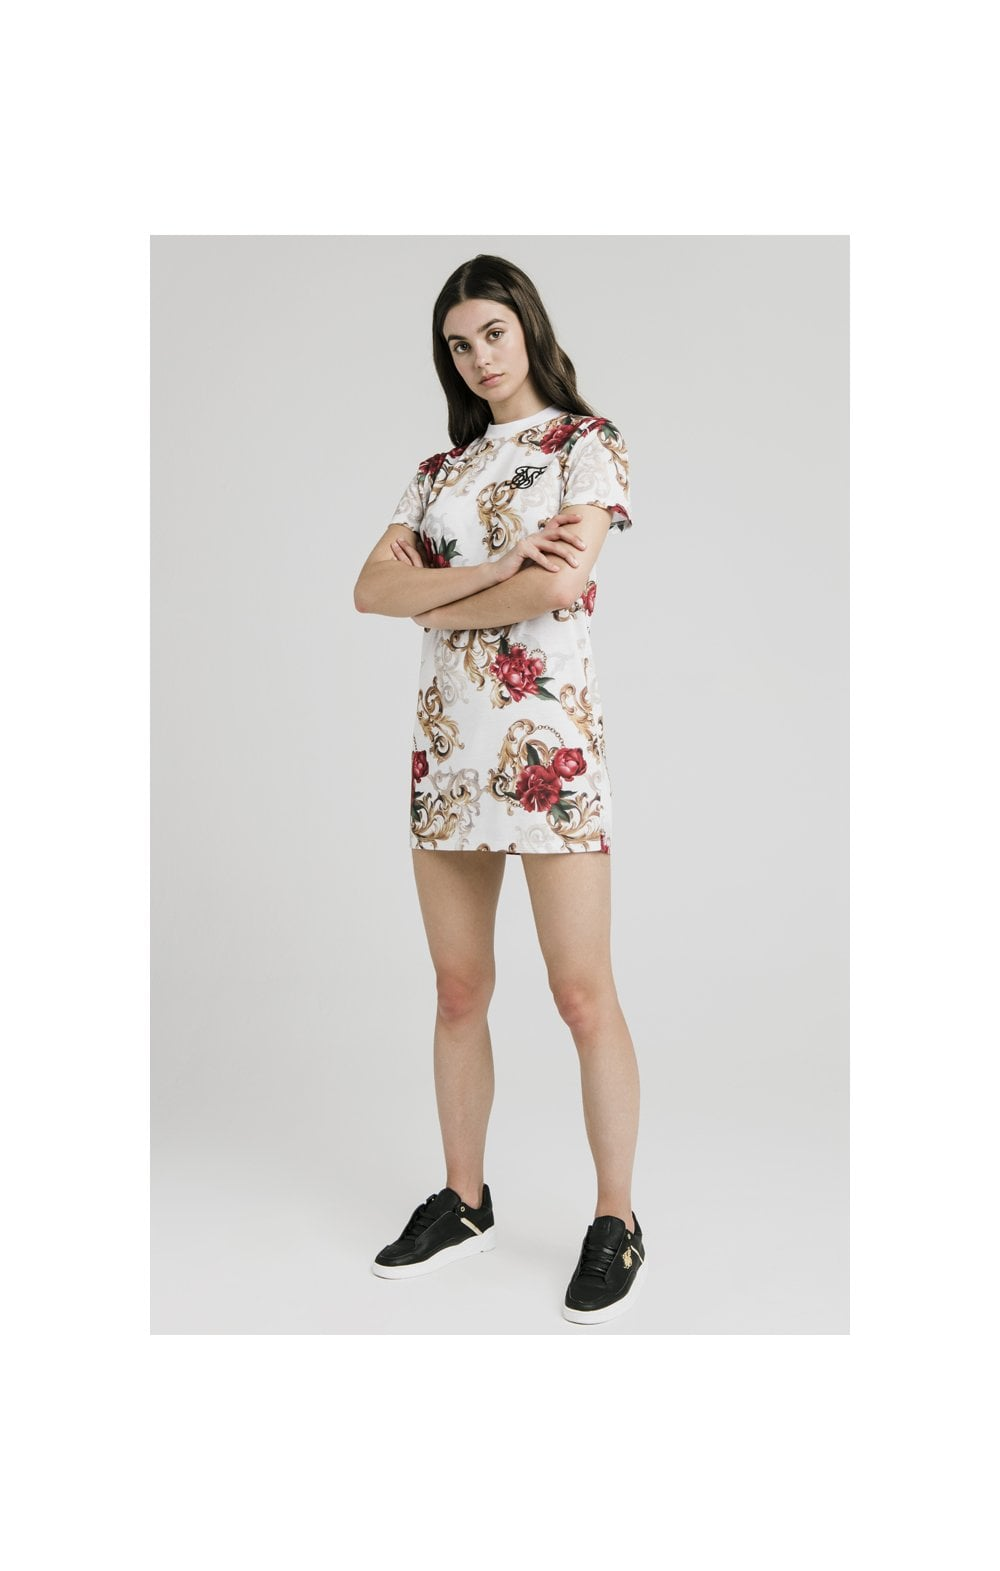 SikSilk T-Shirt Dress - White & Floral Elegance (2)